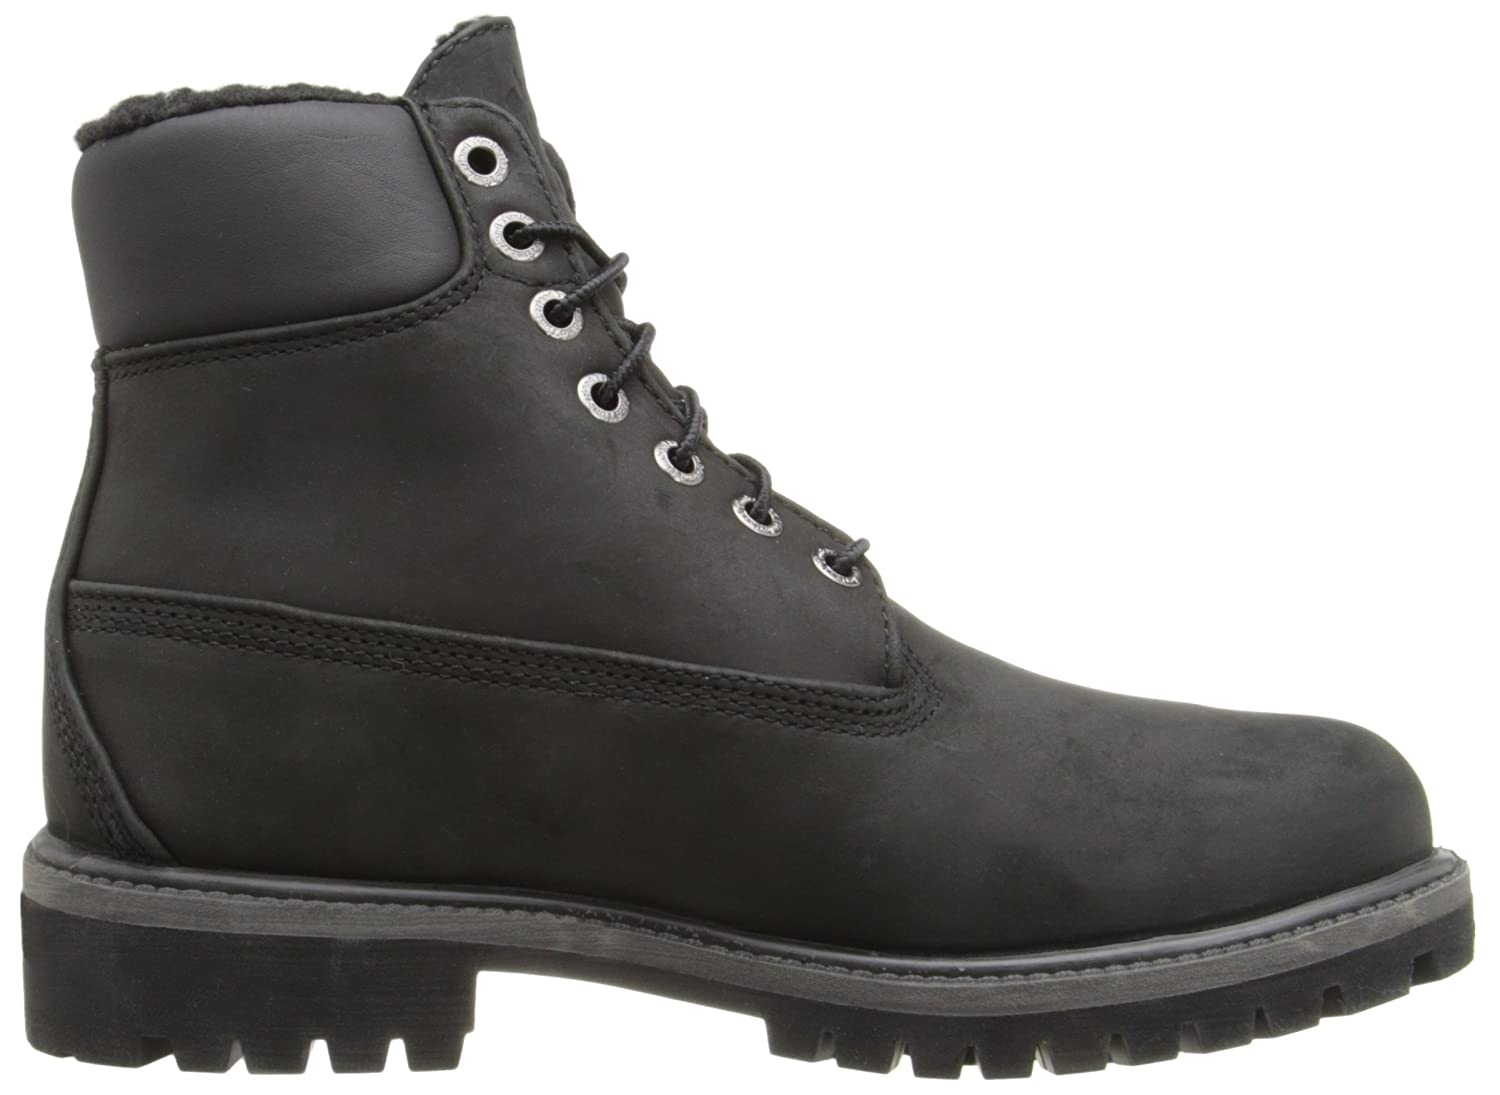 Timberland Men Shoes / Boots Heritage 6 In Lined: Amazon.co.uk: Shoes & Bags